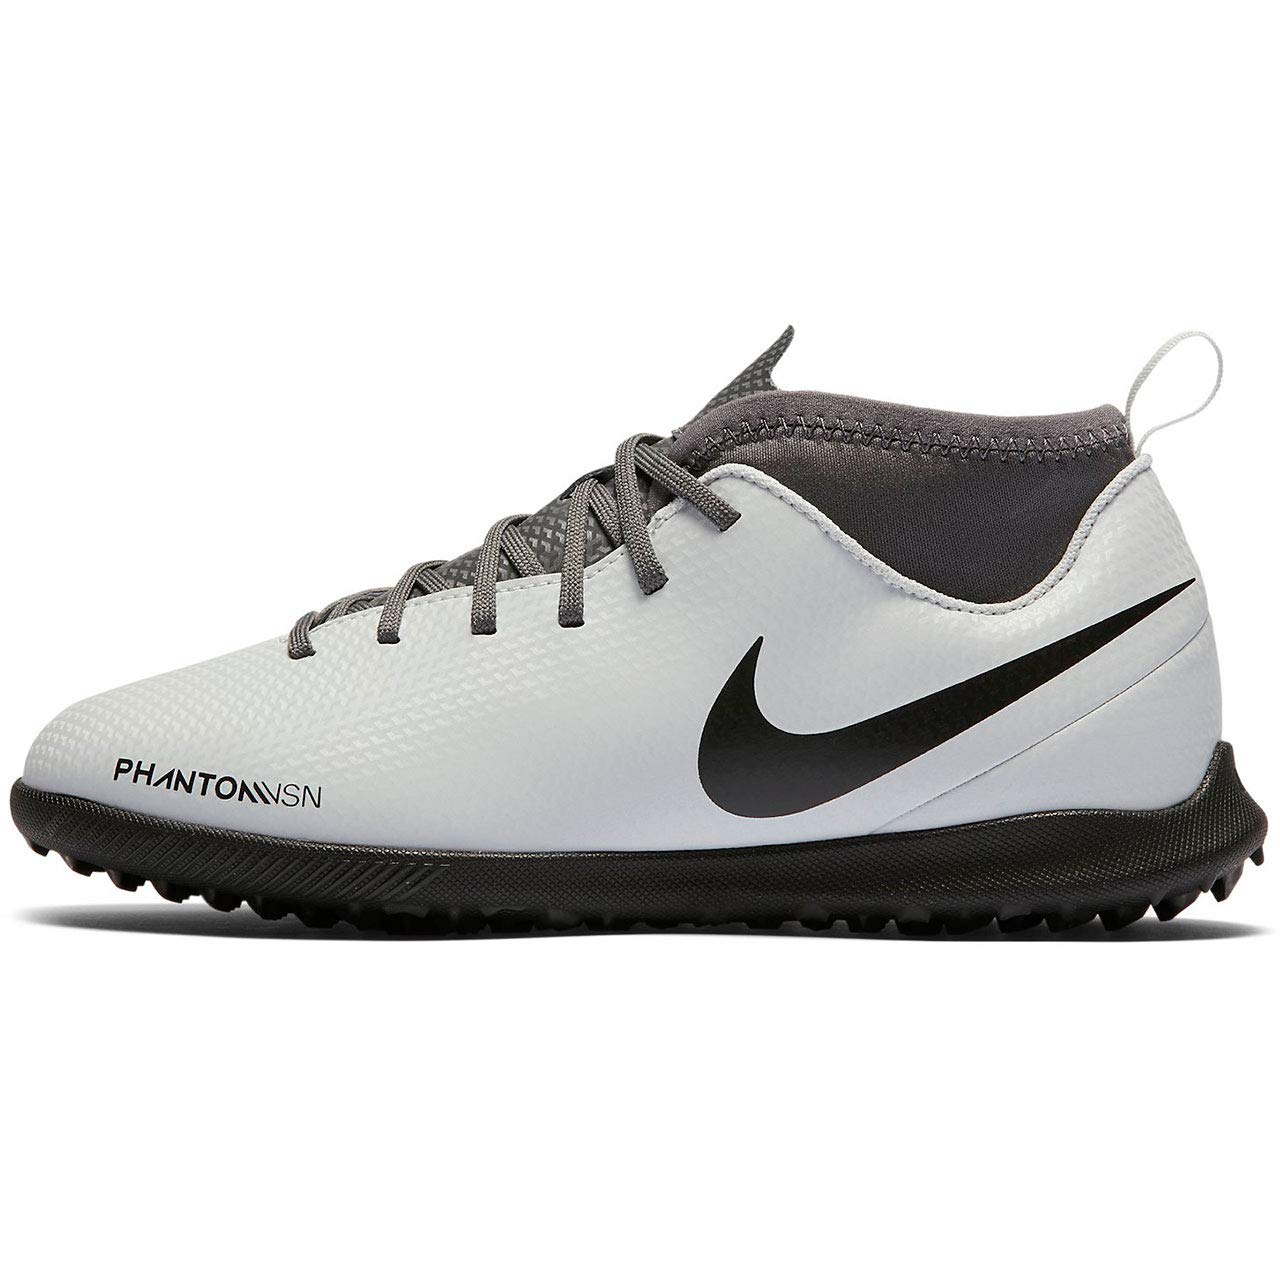 Nike Phantom Vision Club Kids Soccer Turf Shoes